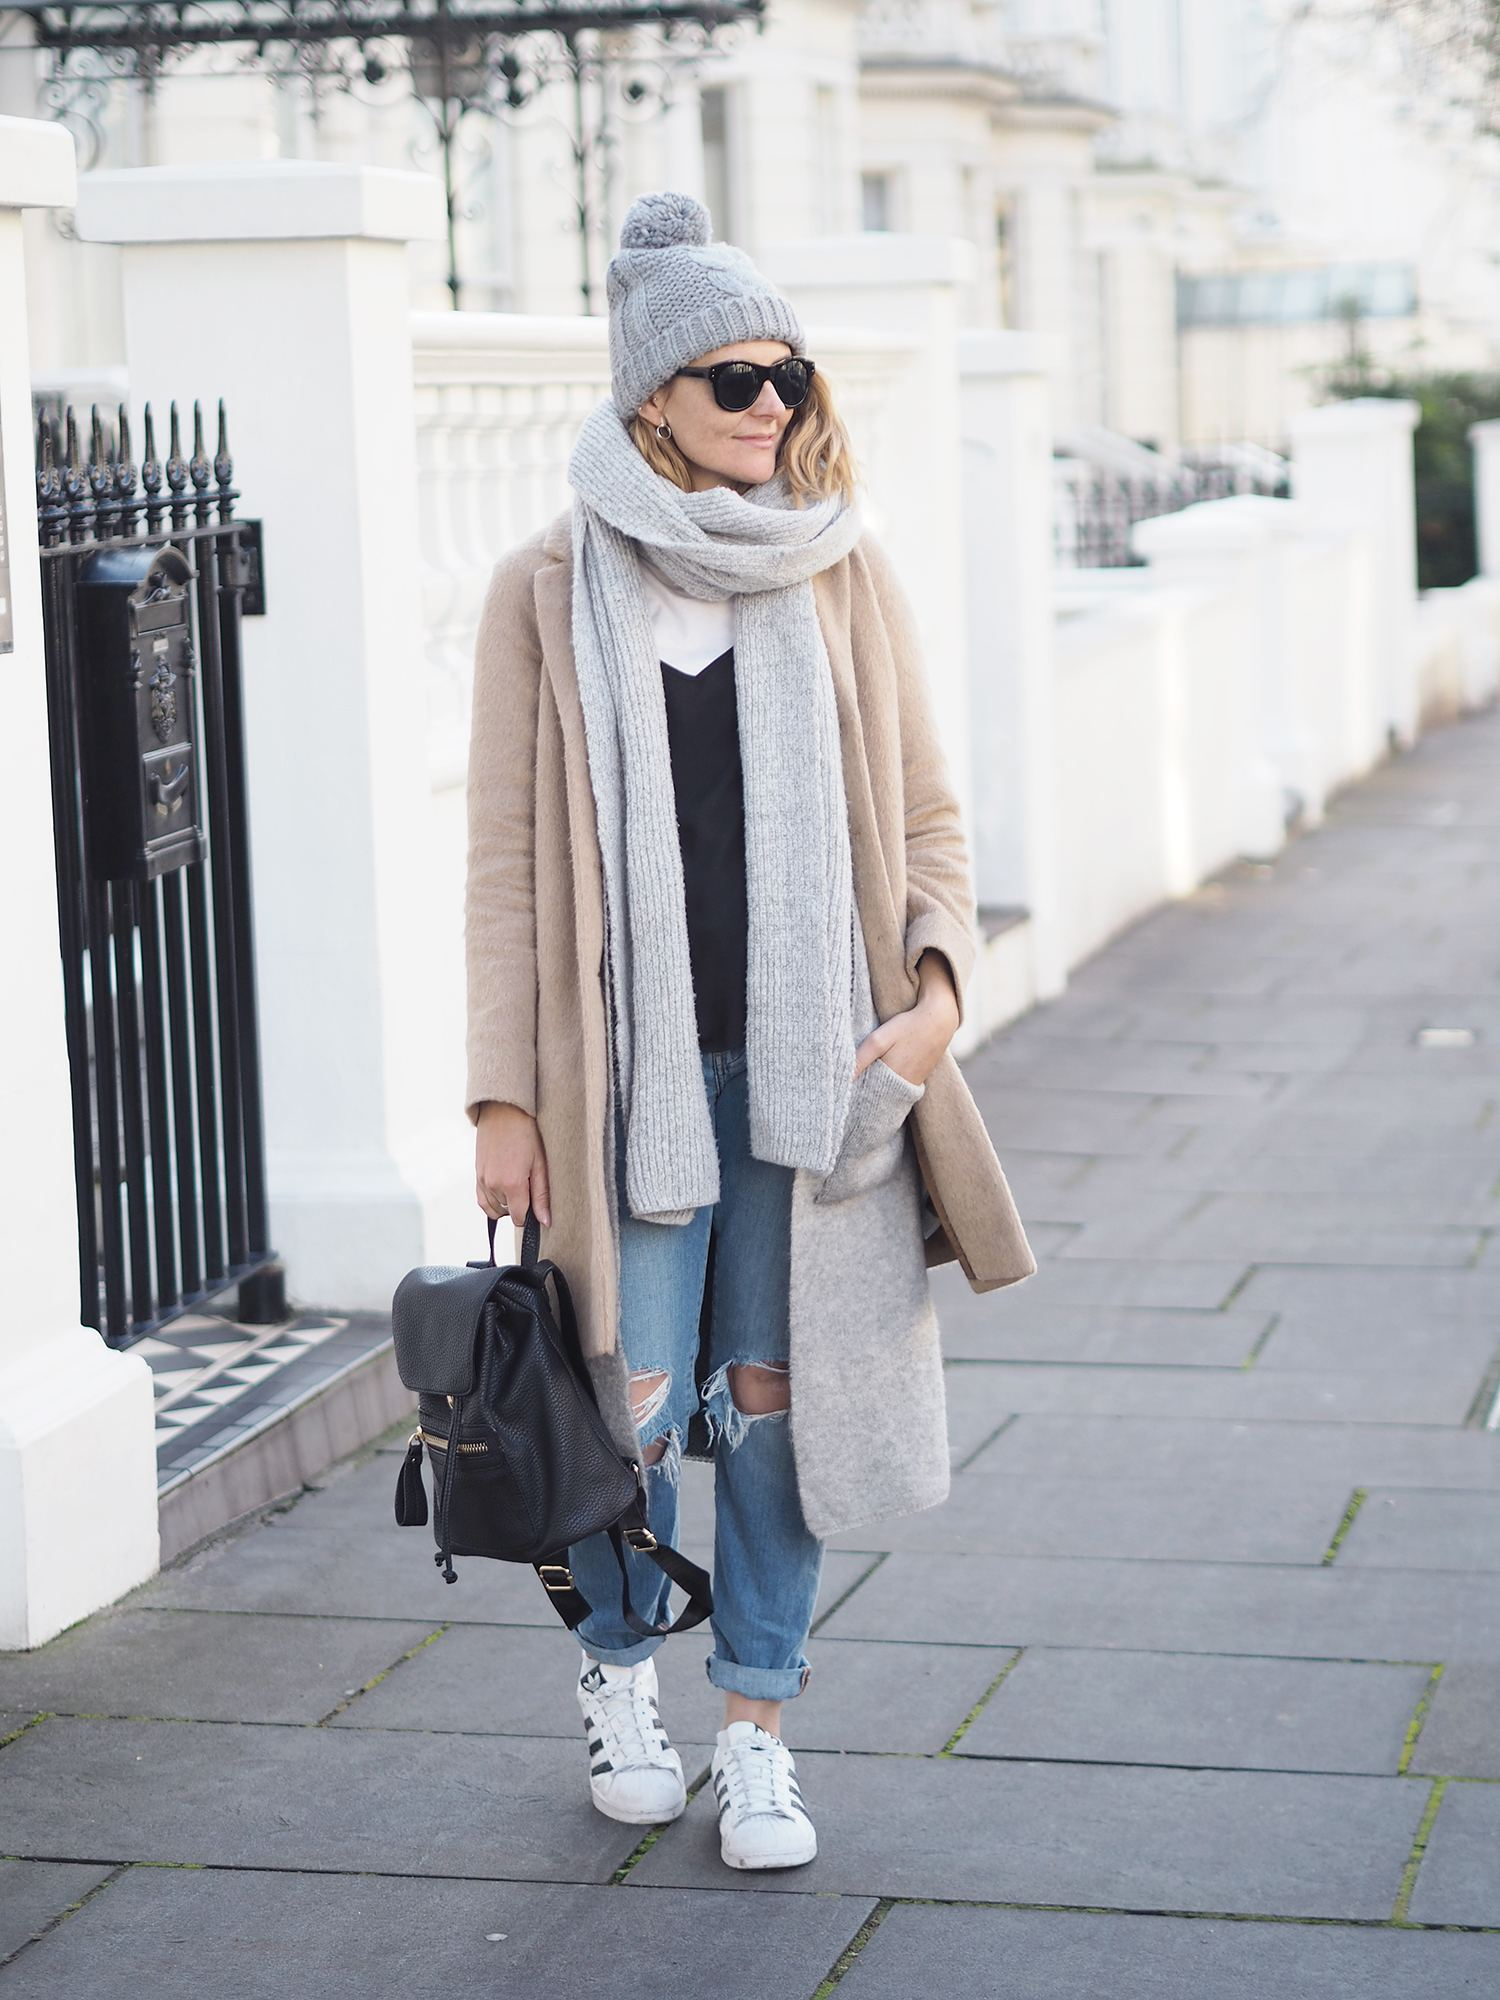 layer your outfit for winter